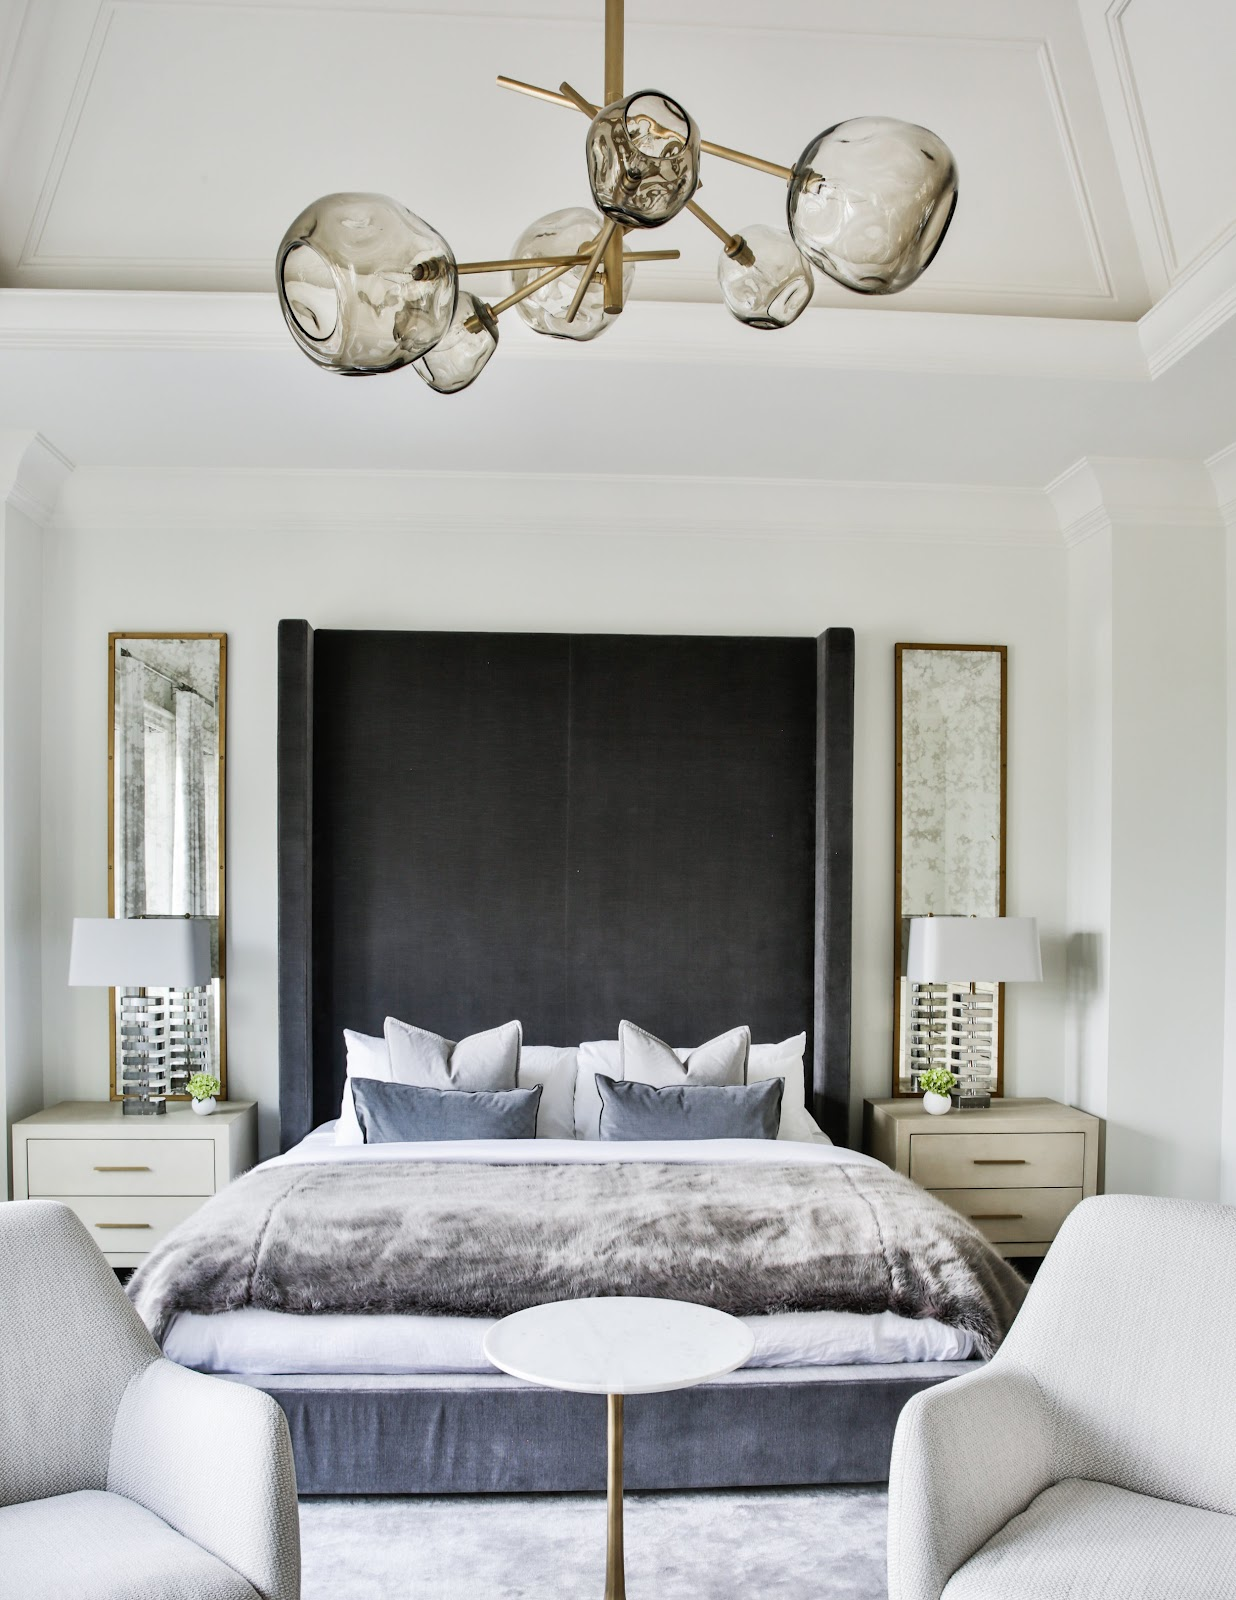 Statement lighting, Master Suite, Gold and Gray Accents